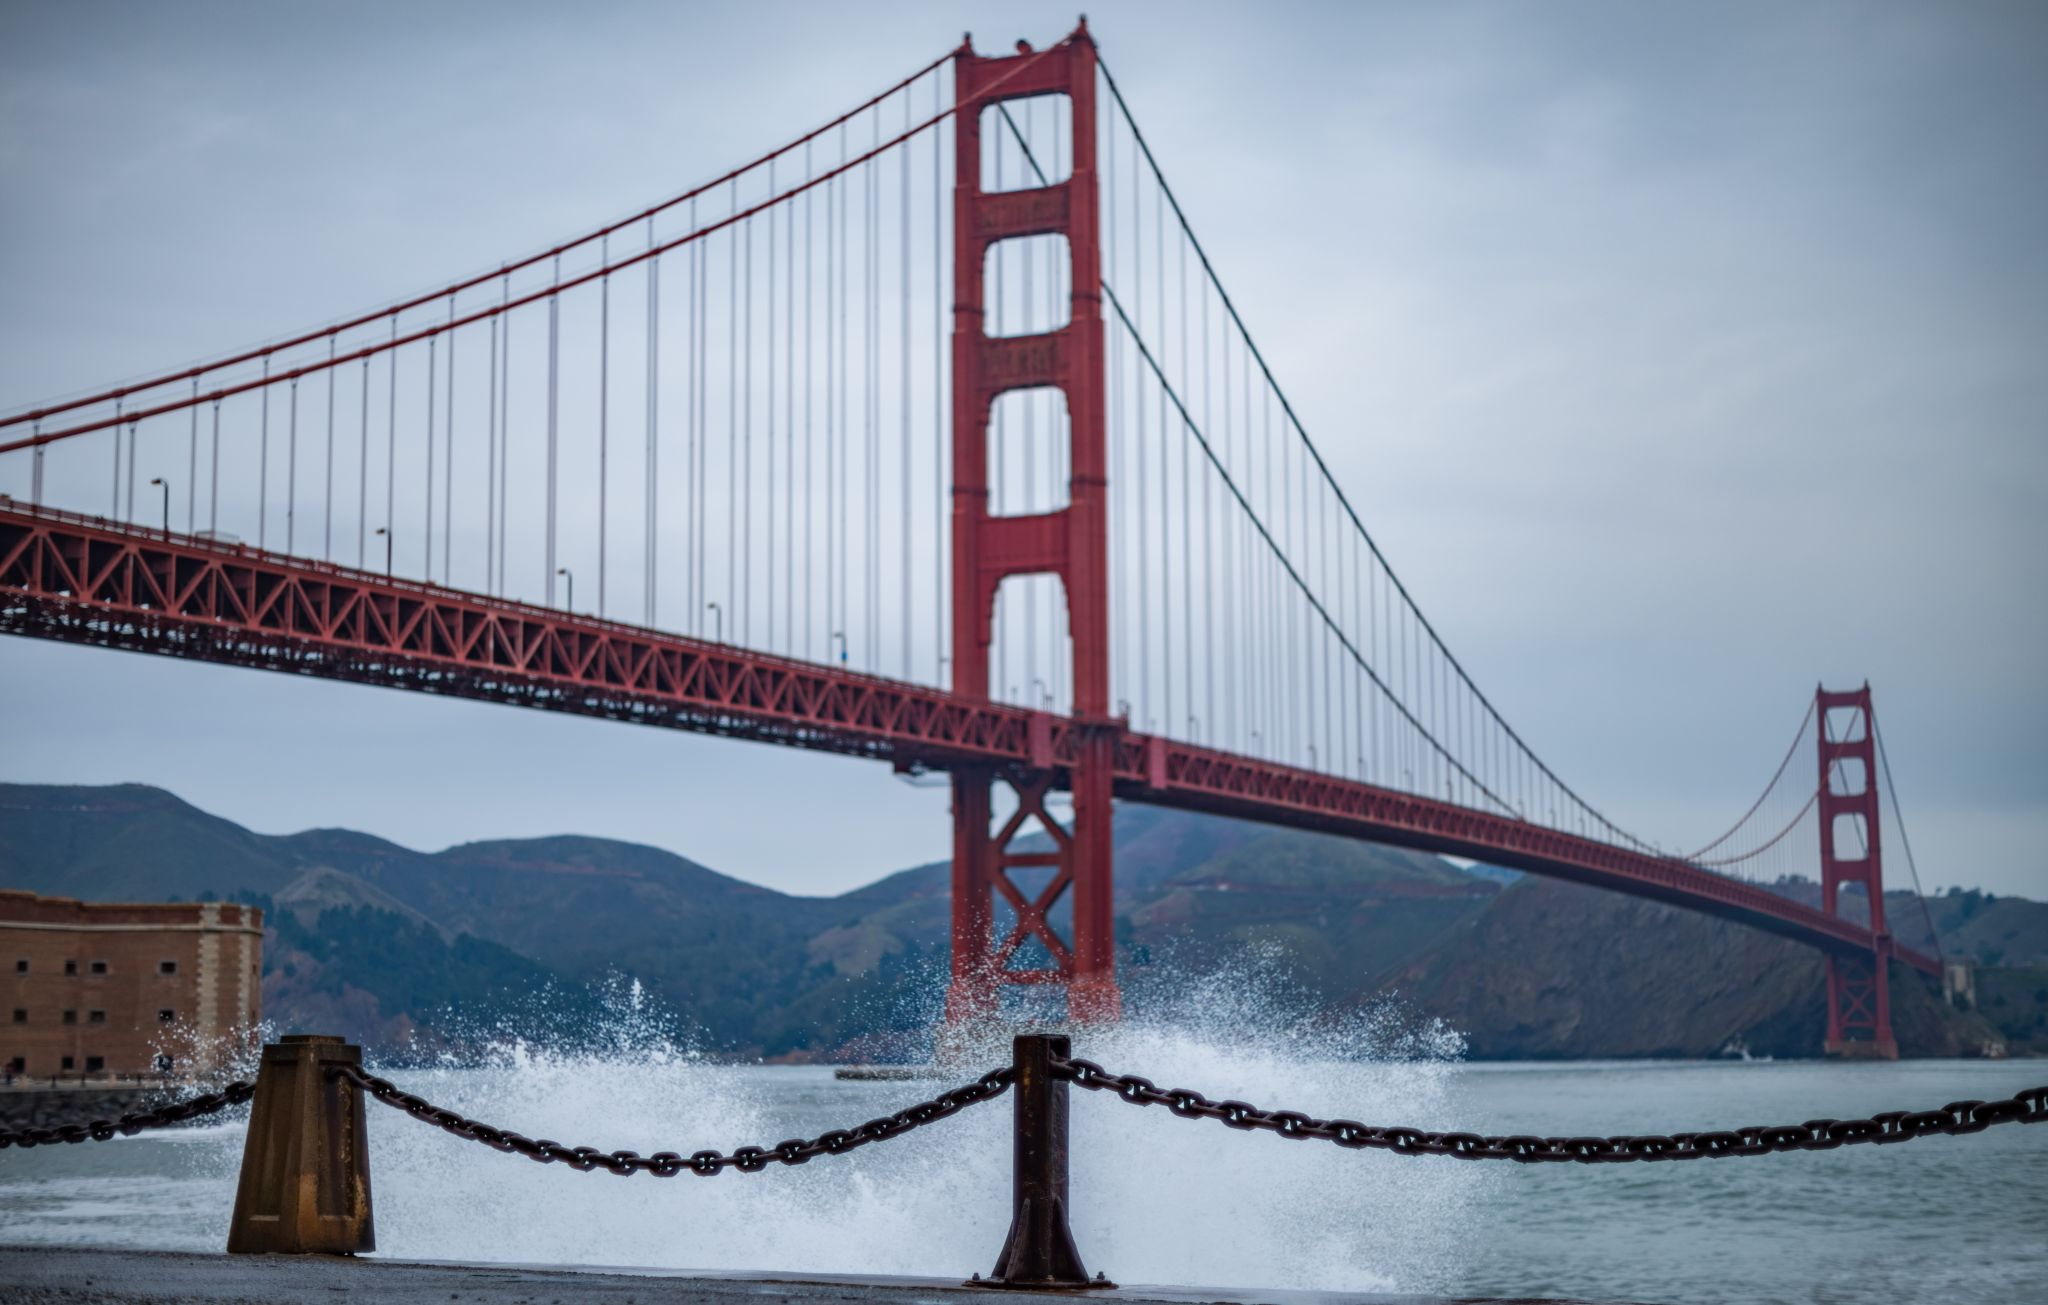 The story of the hidden handprints under the Golden Gate Bridge